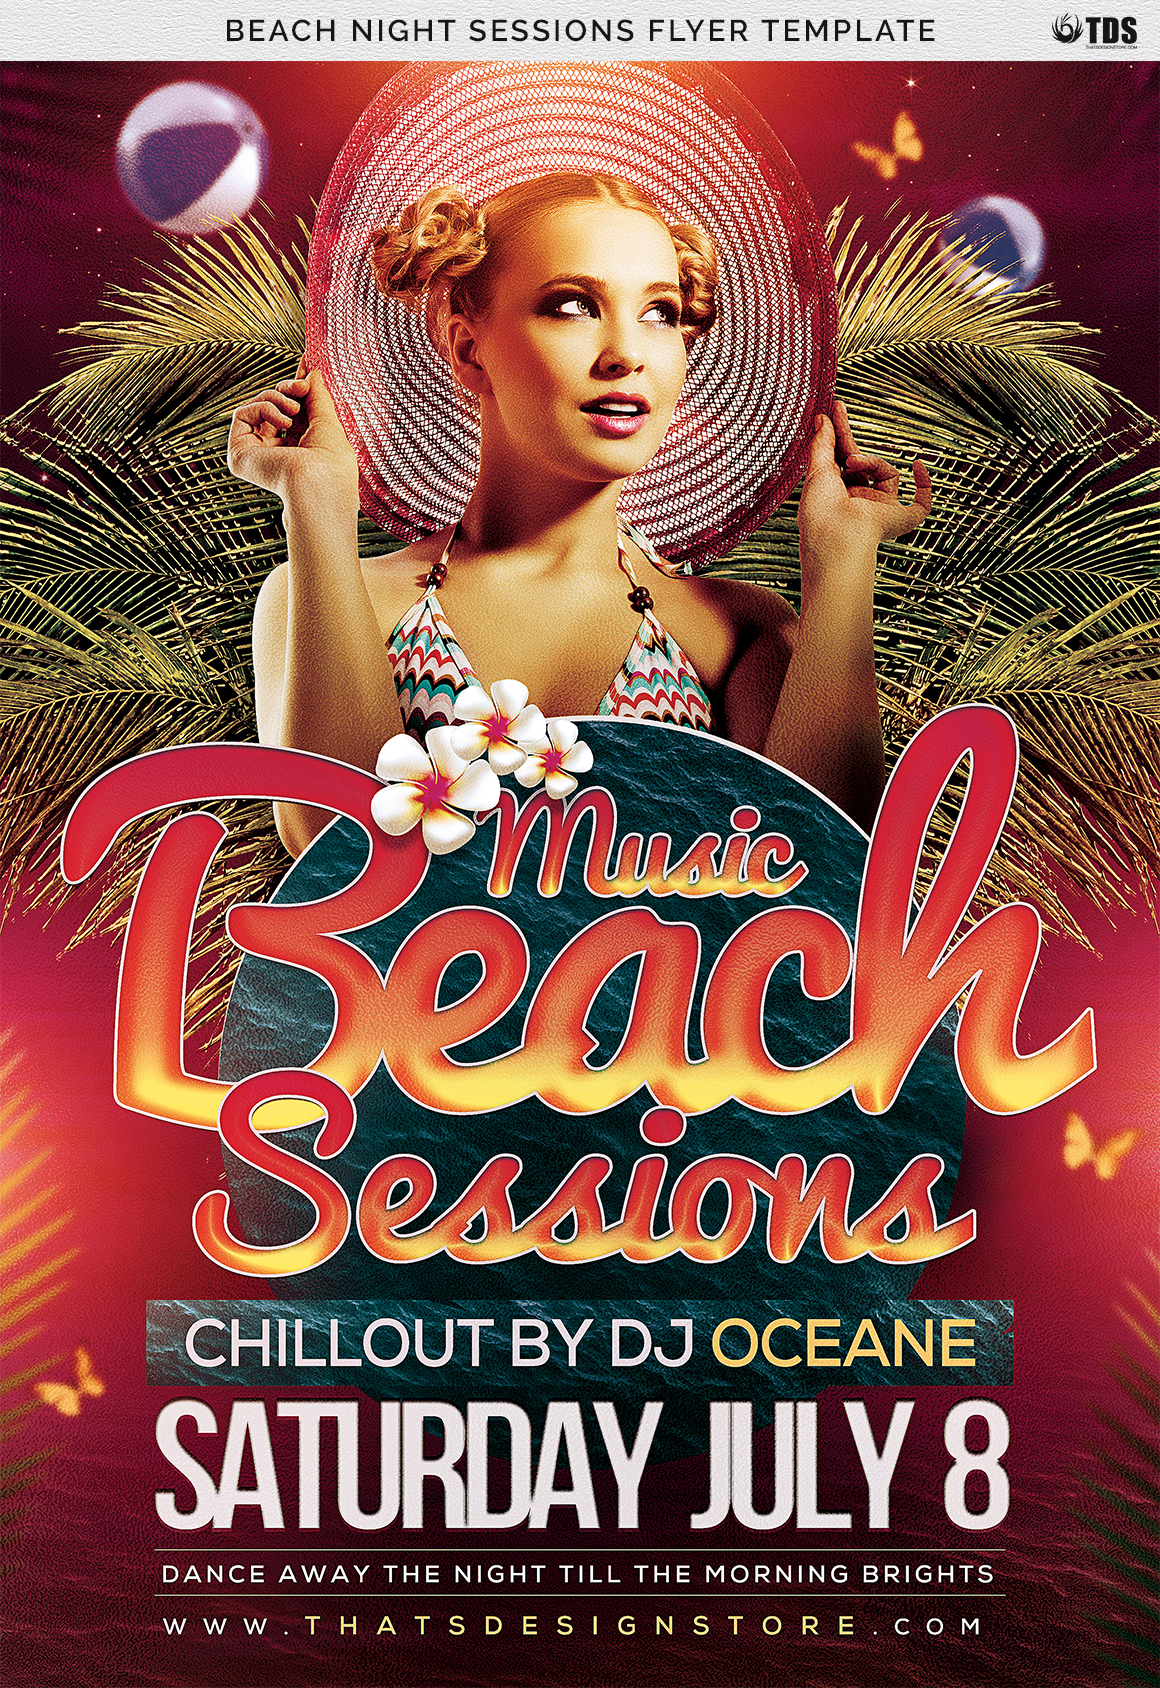 Beach Night Sessions Flyer Template example image 7